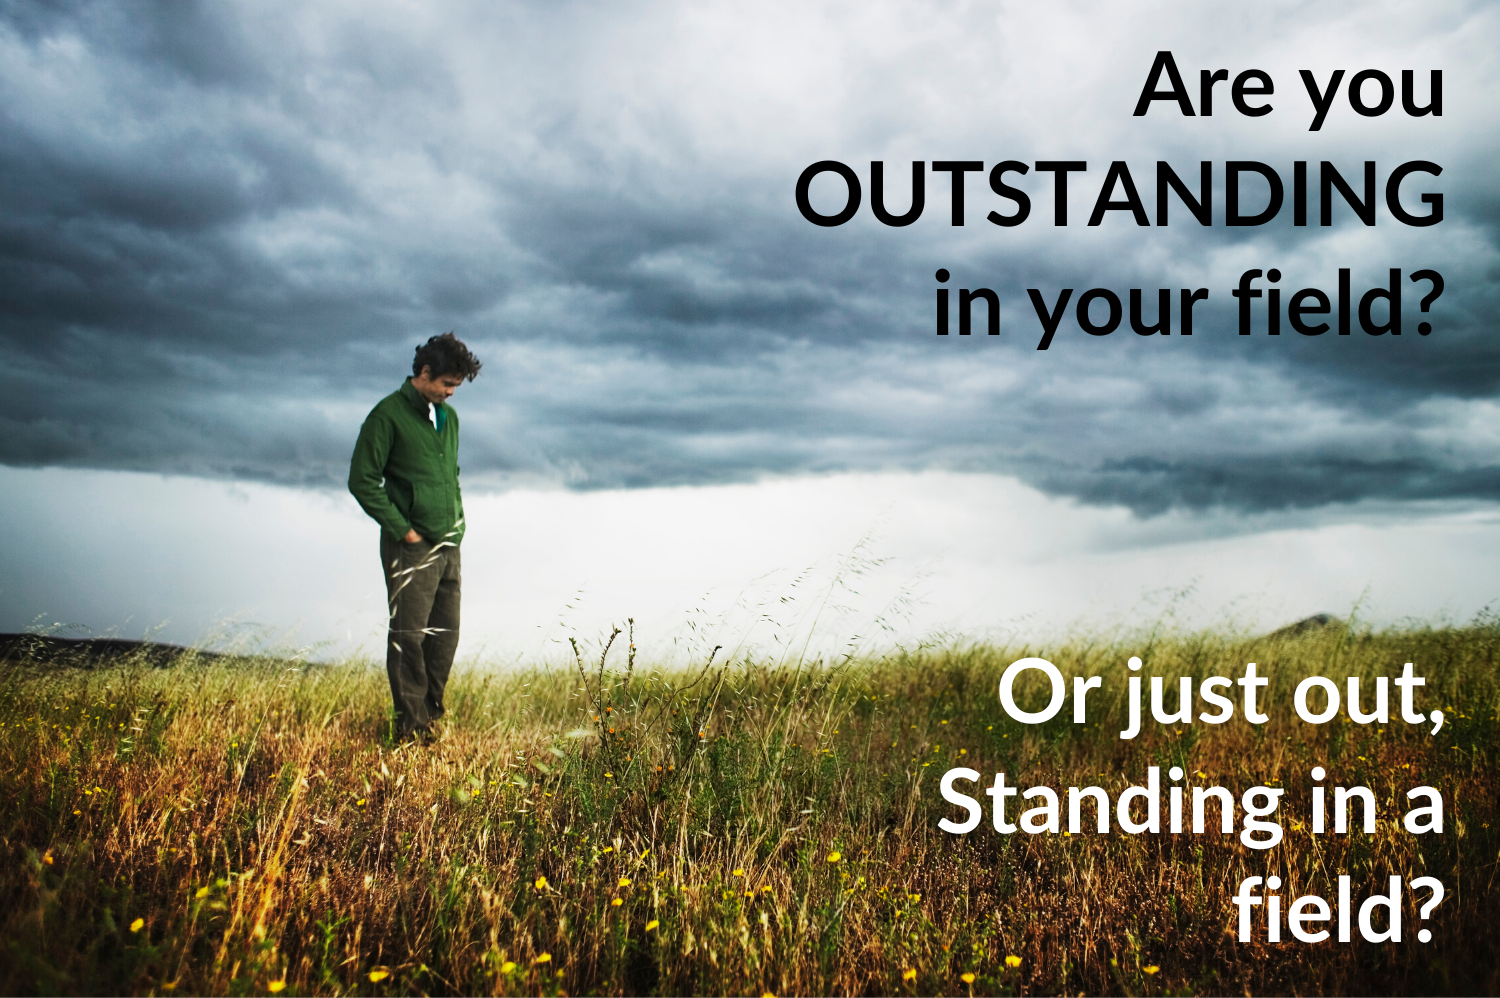 Are you Out Standing or OUTSTANDING?